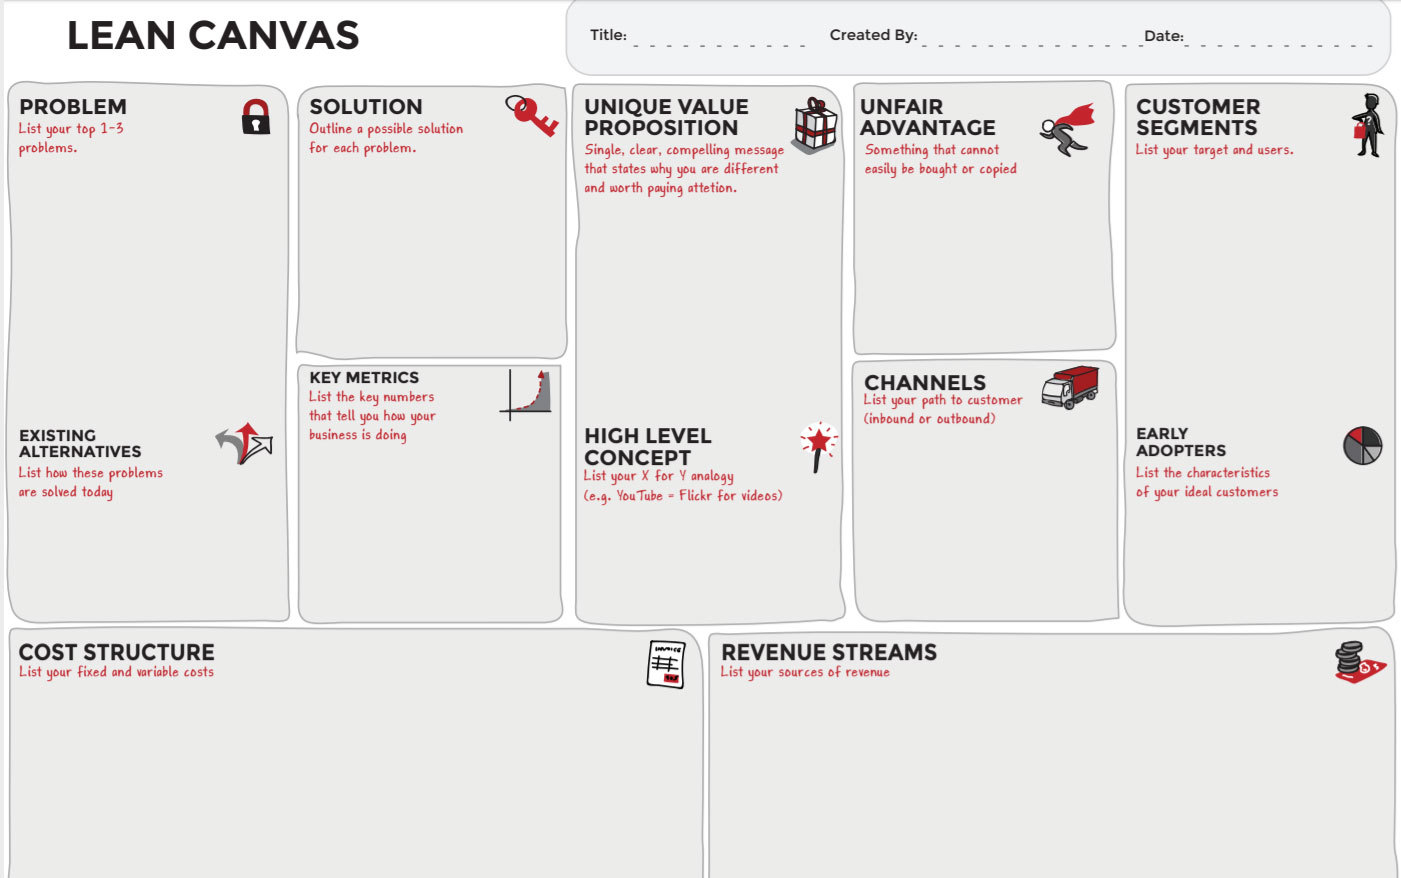 Lean Canvas Examples Create Your Lean Hypotheses in [30 Mins Flat]